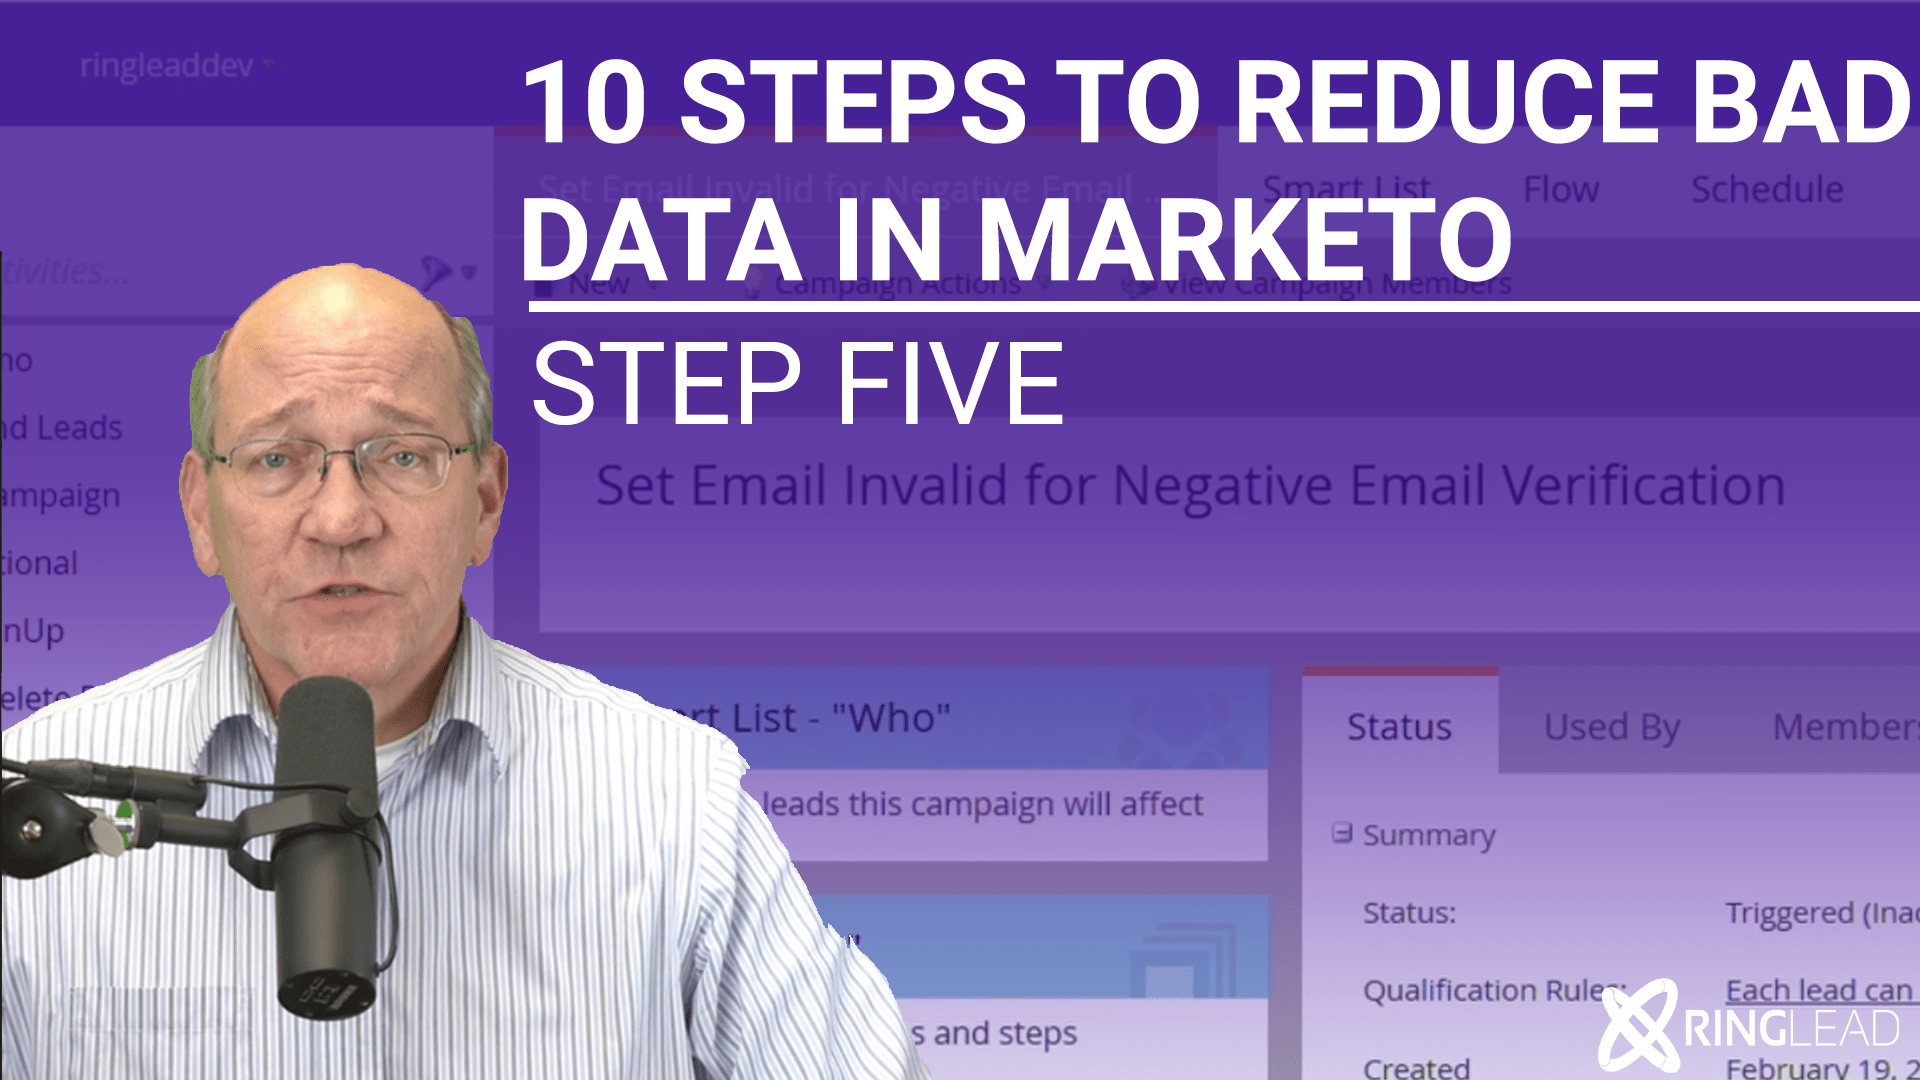 10 Steps to Reduce Bad Data in Marketo: Step 5